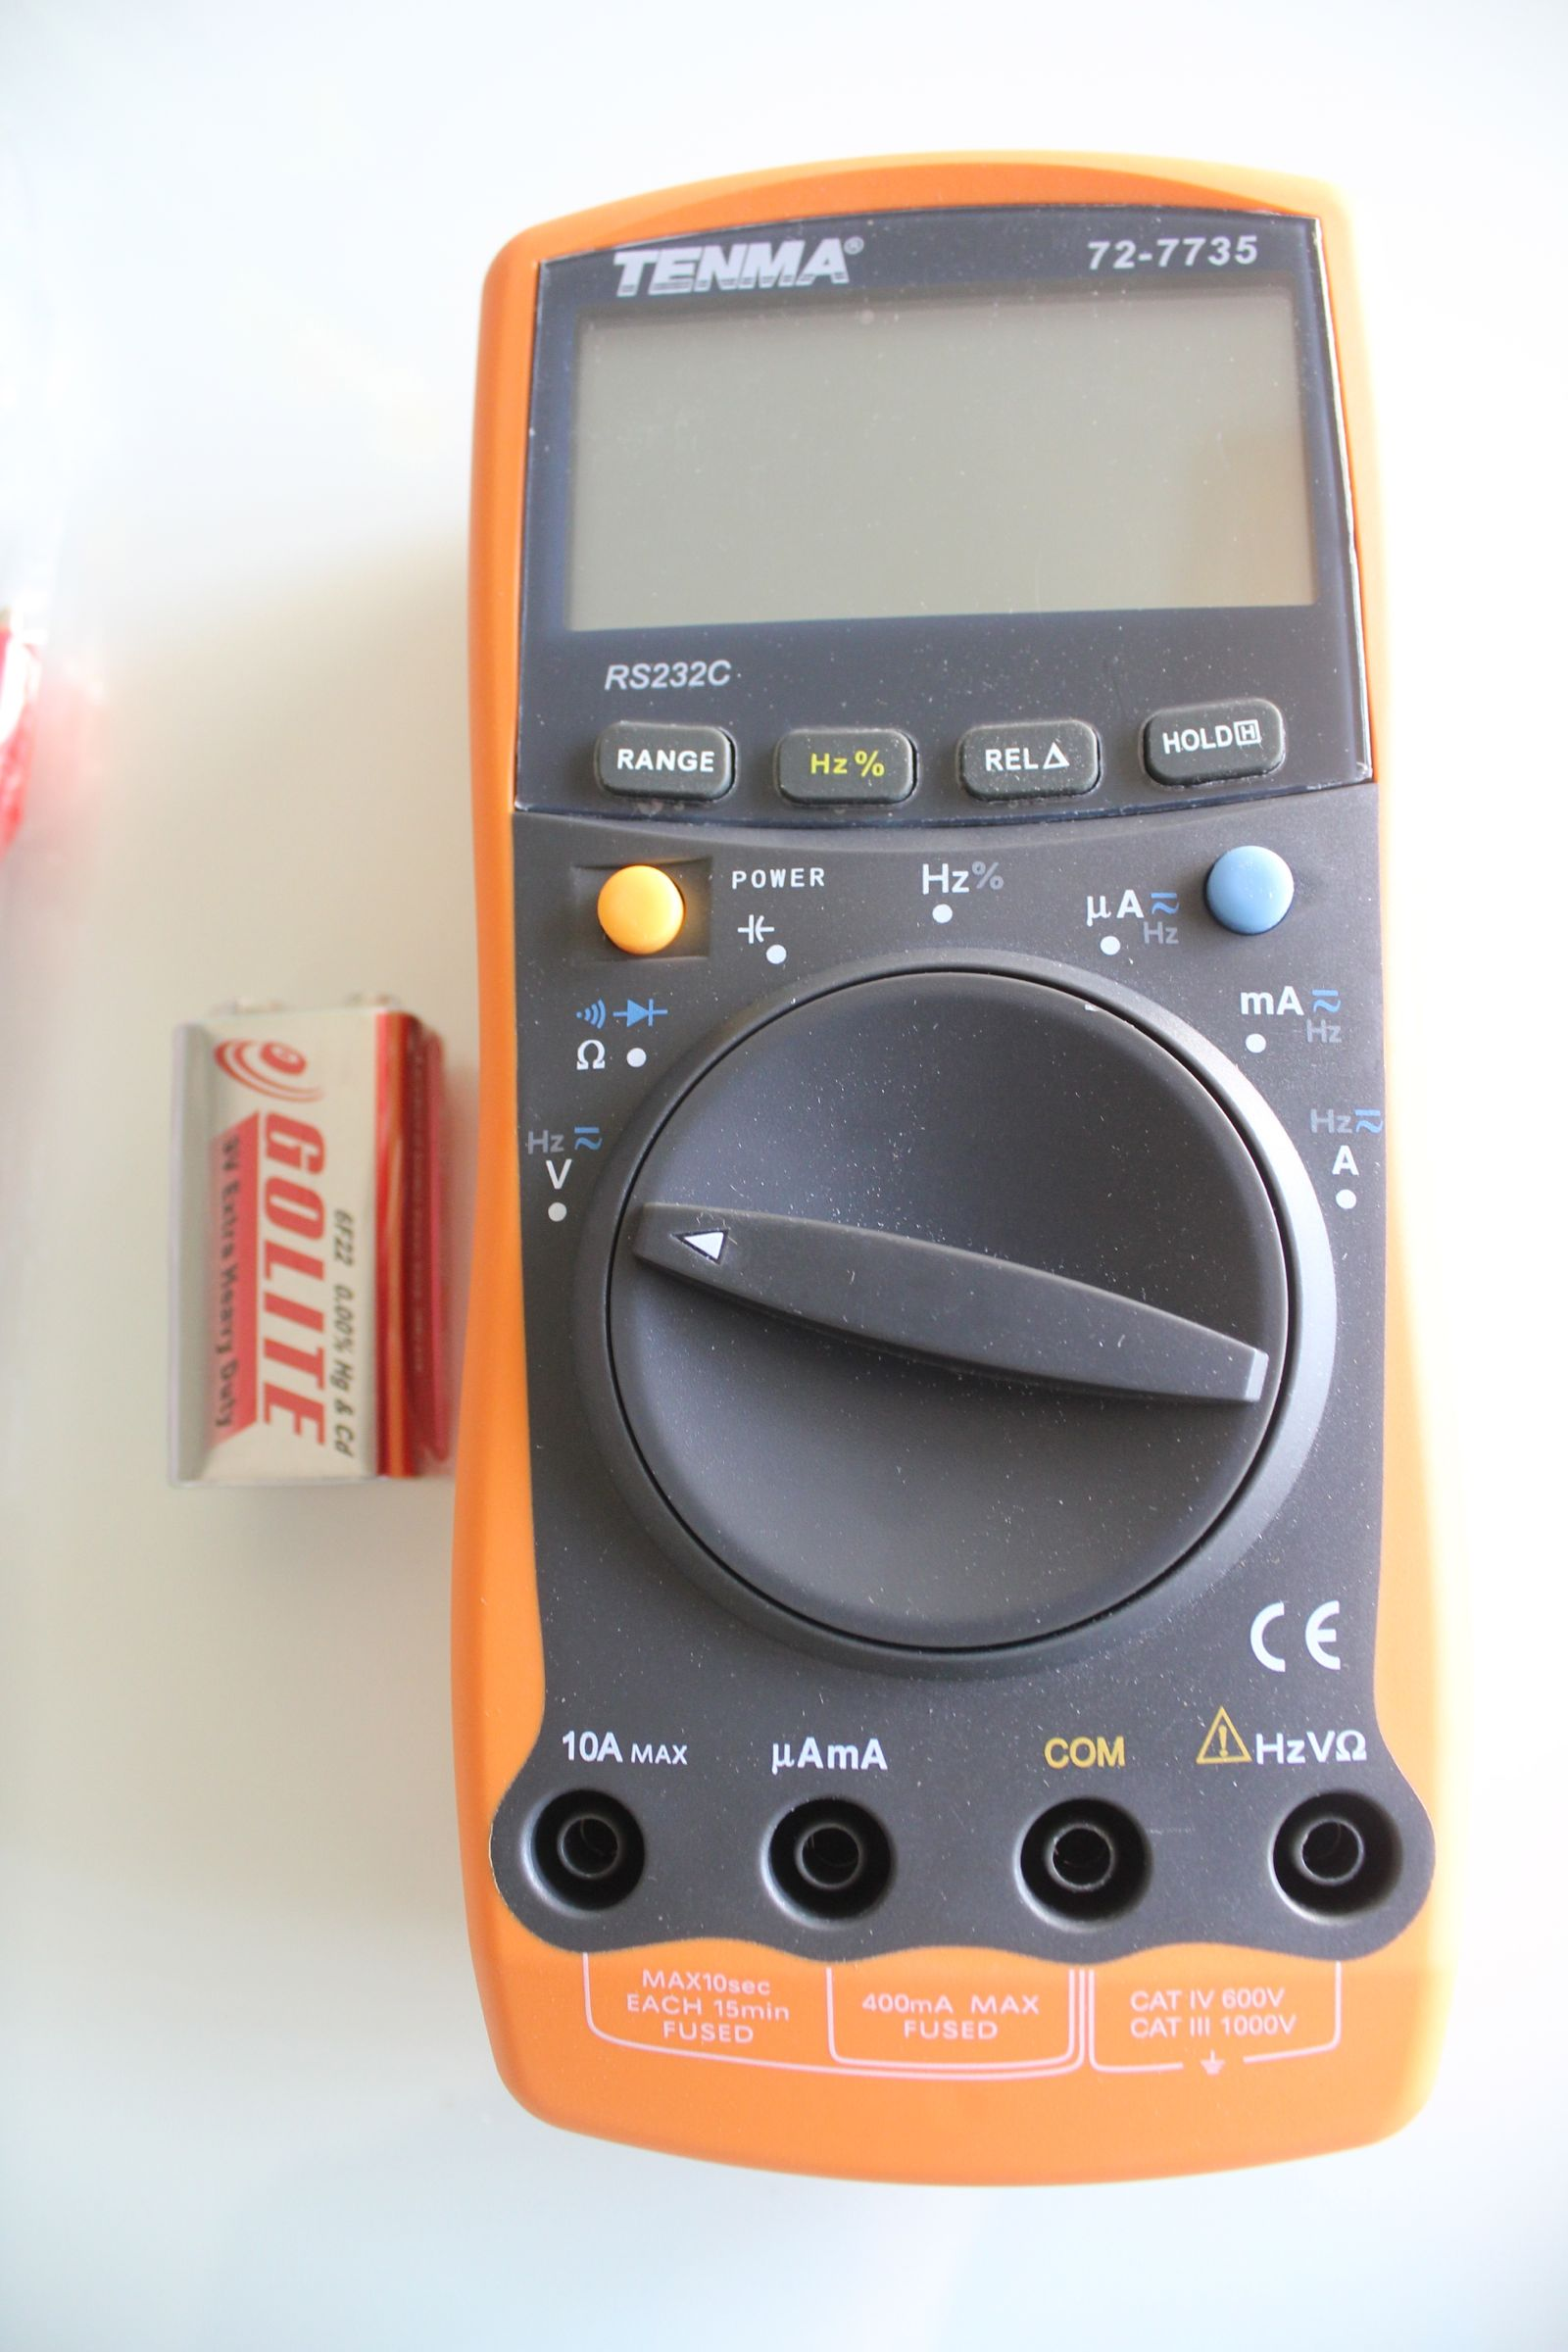 Tenma 72-7735 multimeter